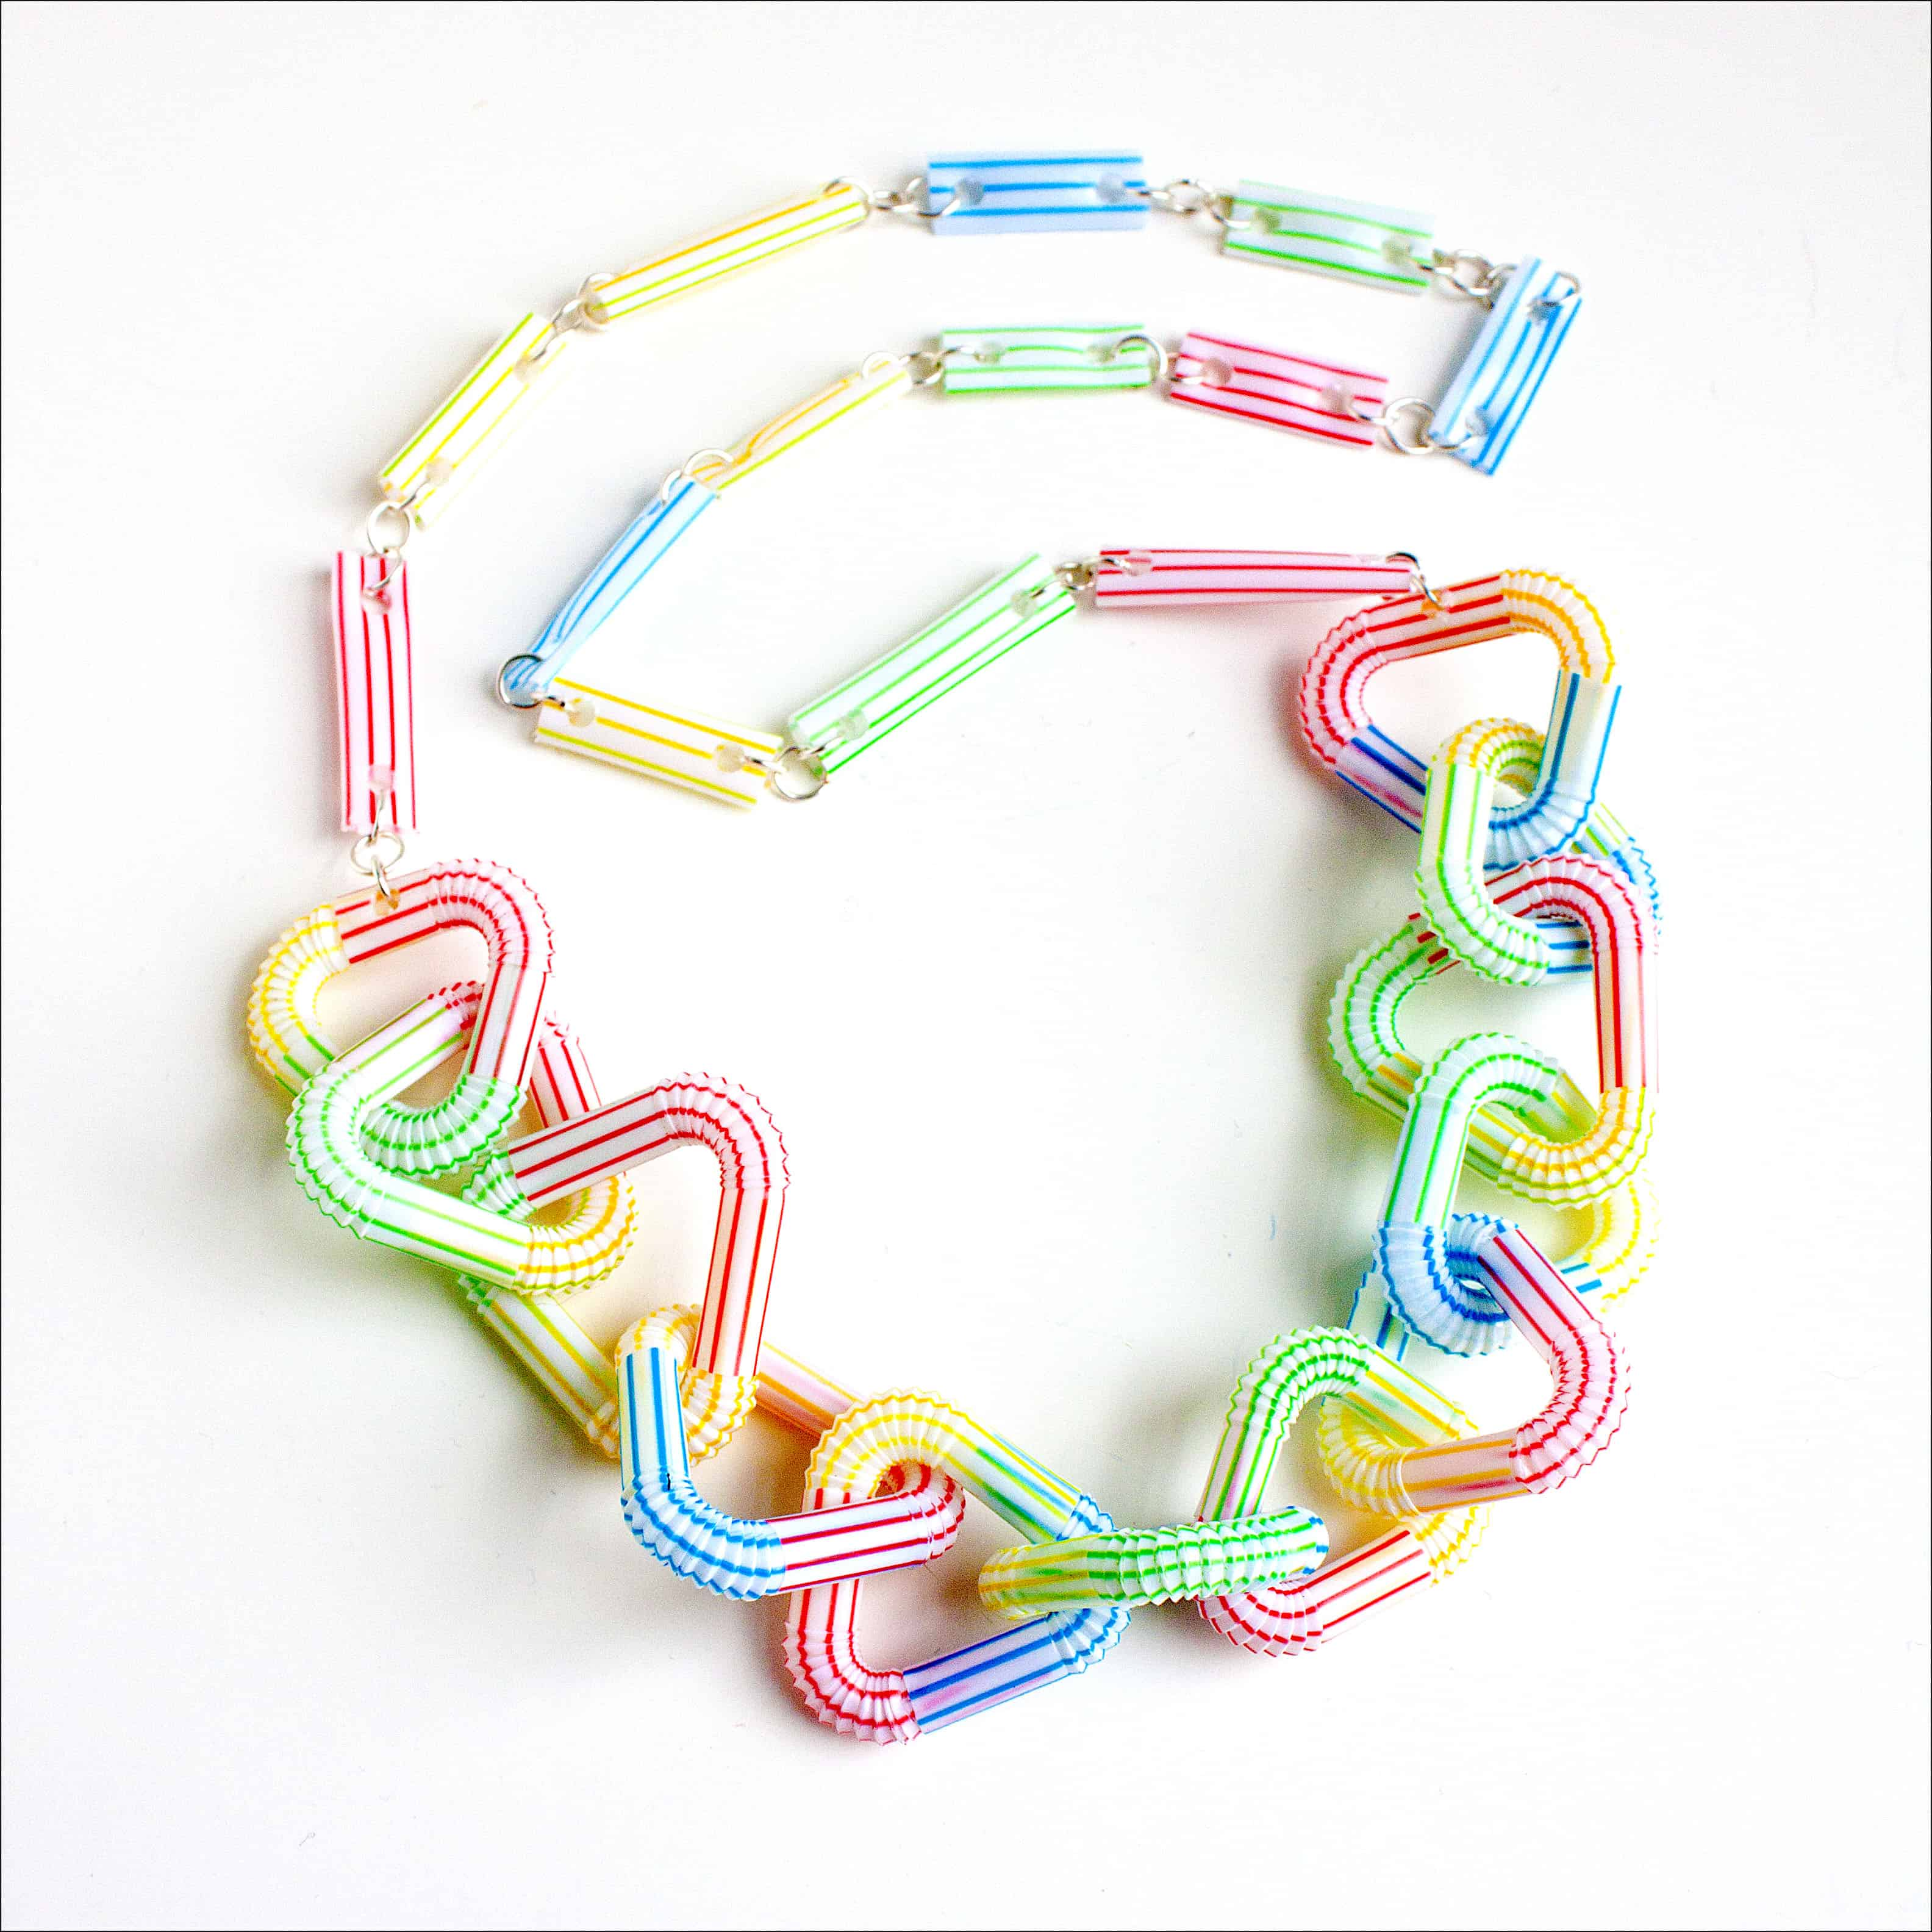 Linked drinking straw necklace